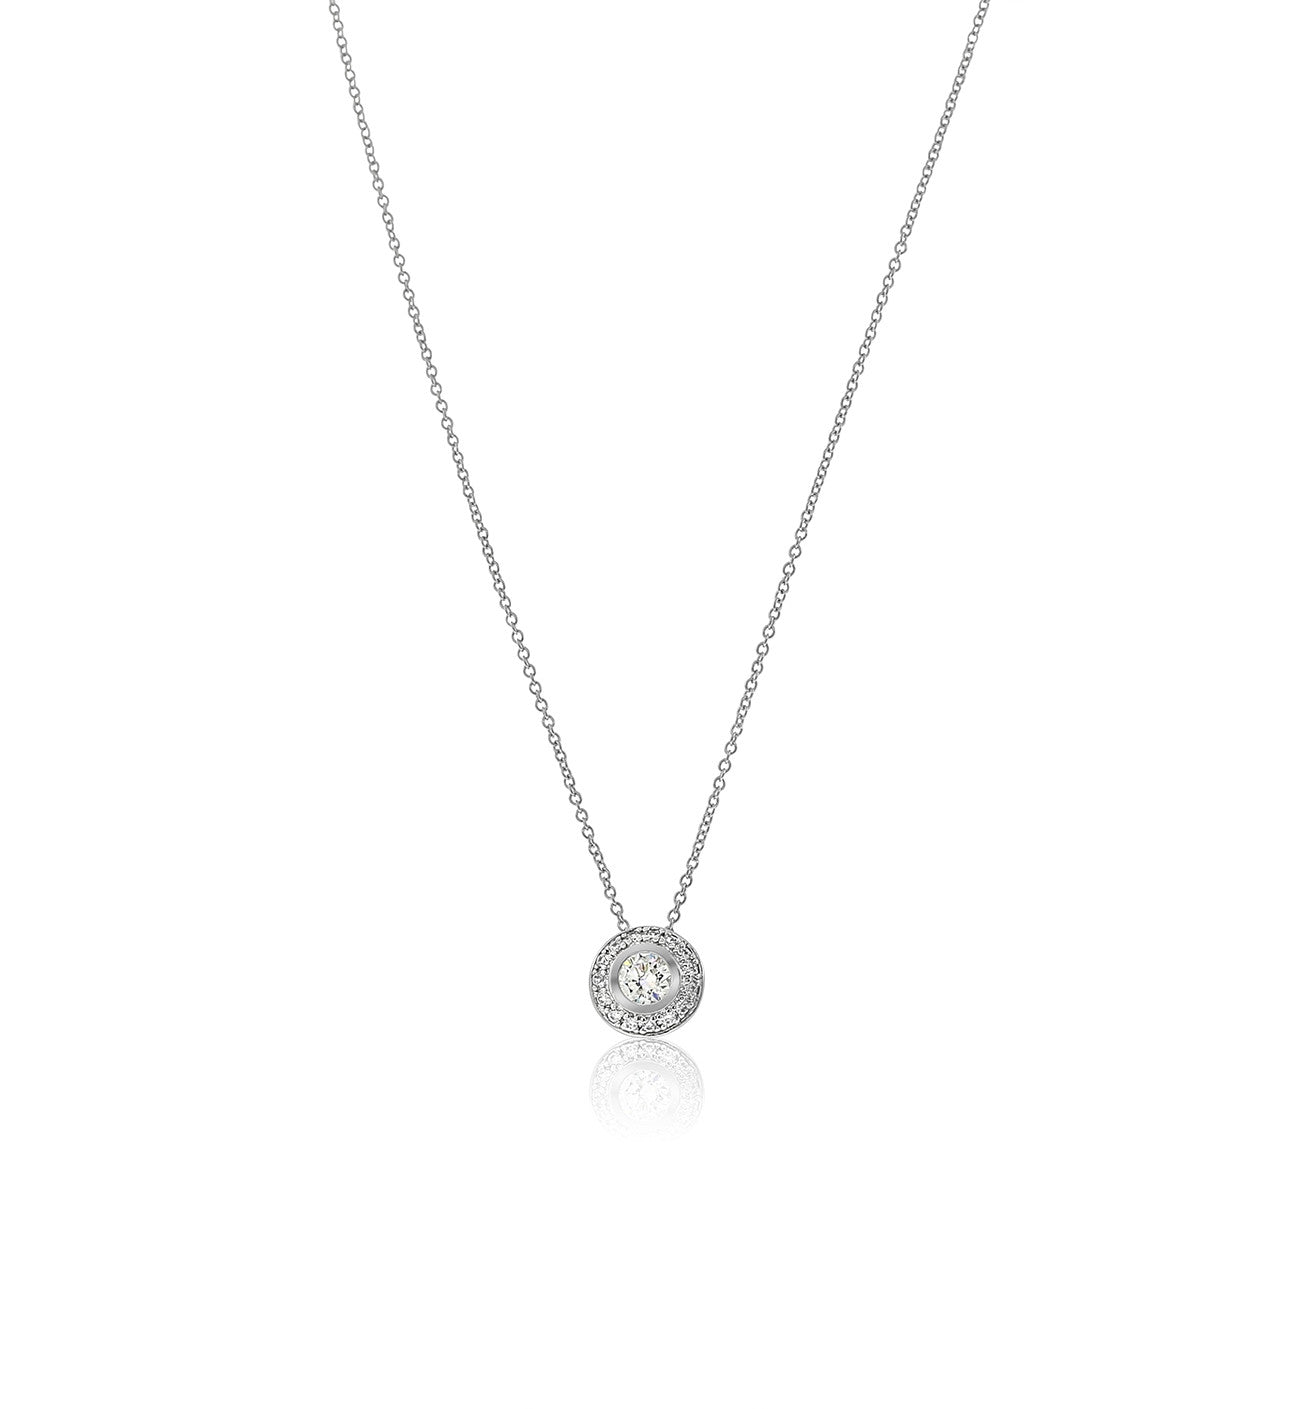 necklace product bar nordstrom image cole shop bezel layered haan cz of pendant rack set